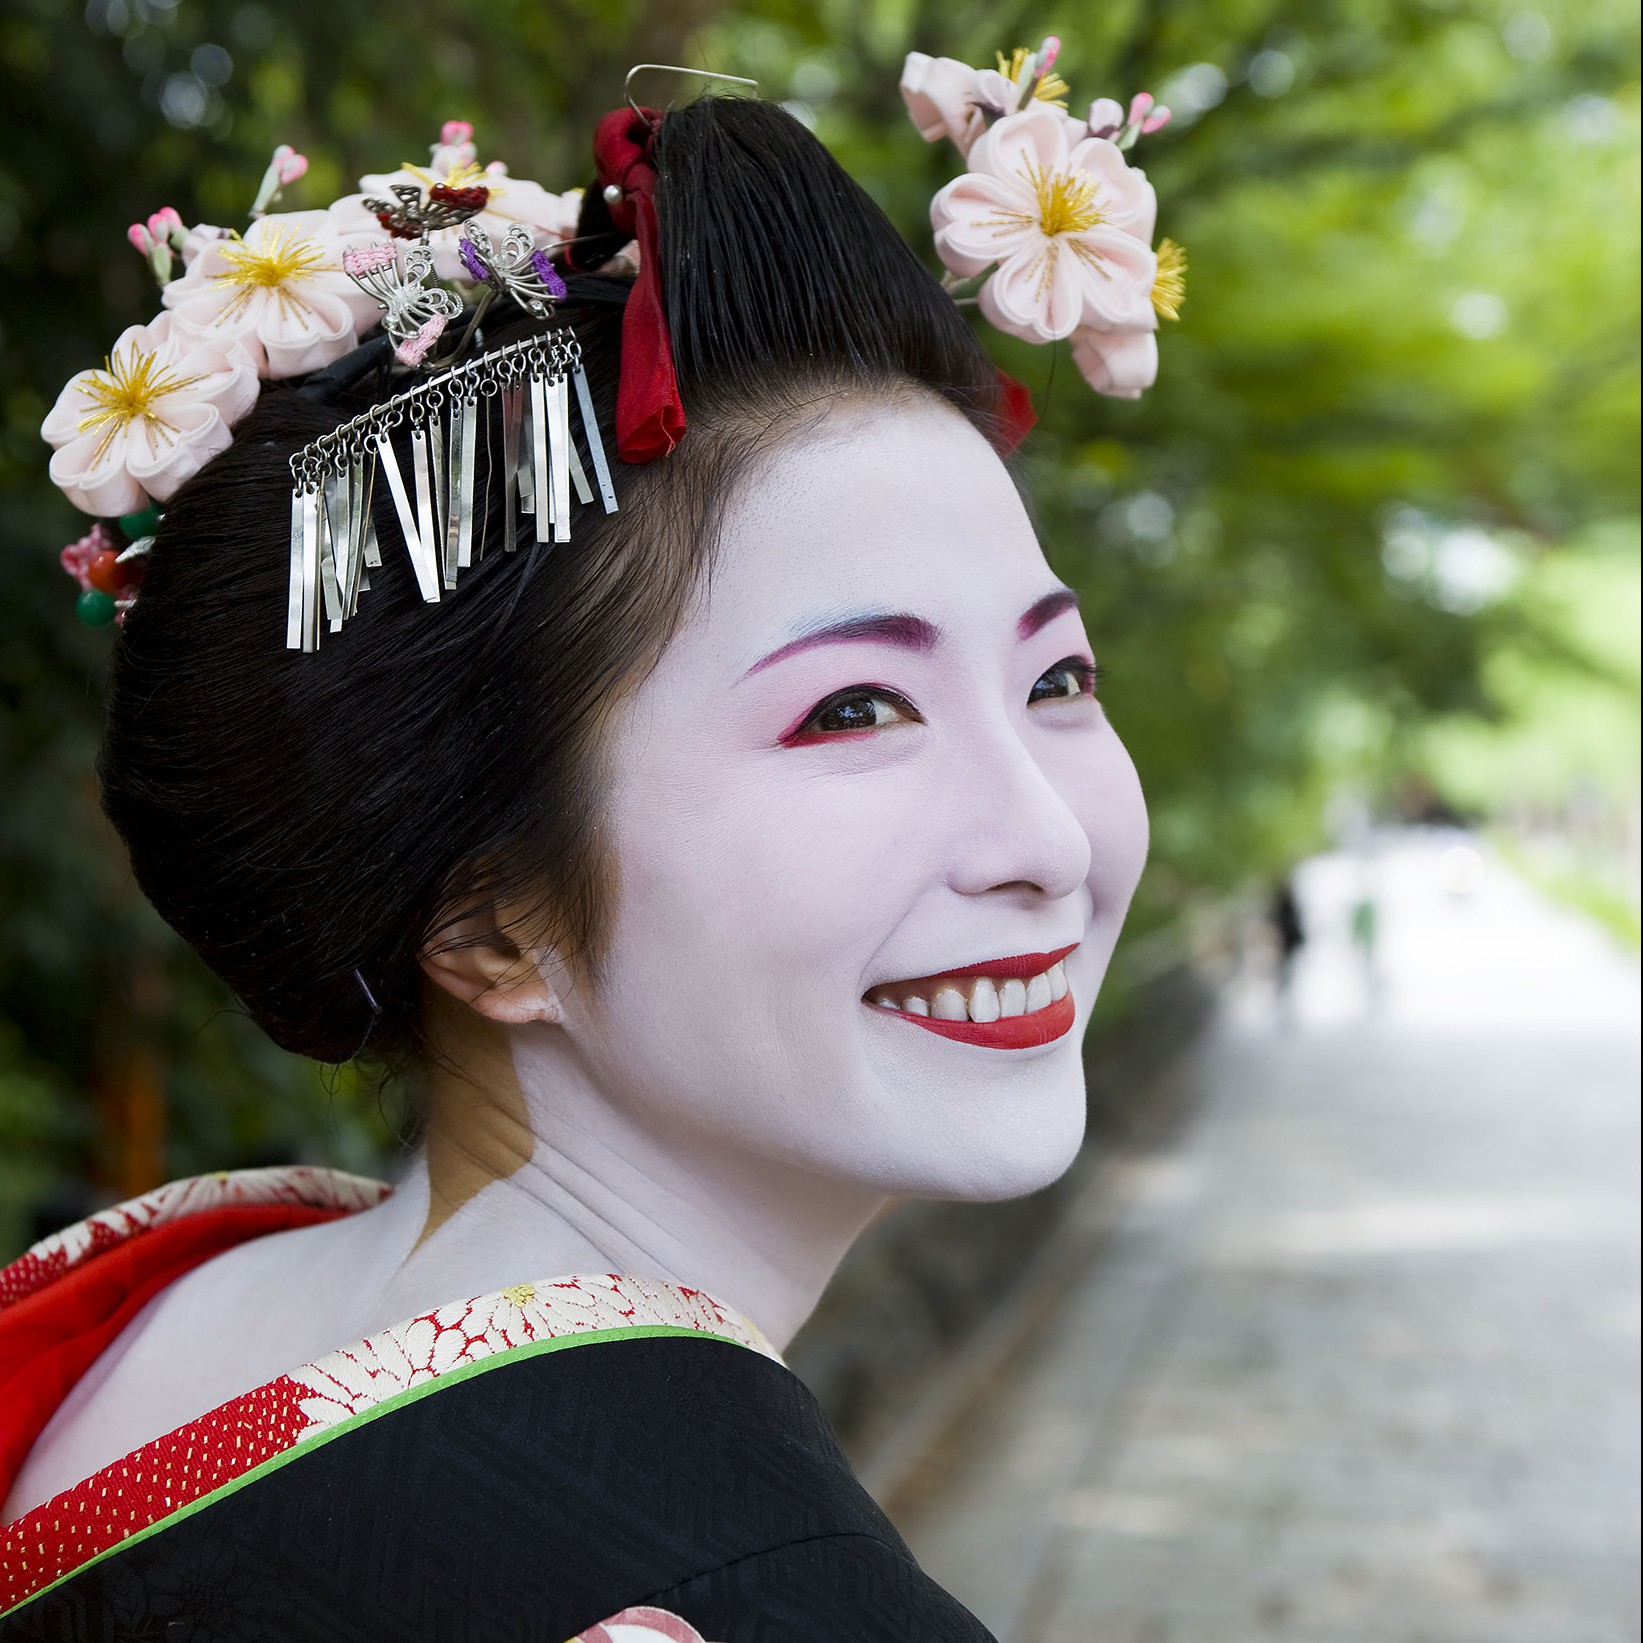 Kyoto Geisha Tours And Entertainment Chris Rowthorn Tours